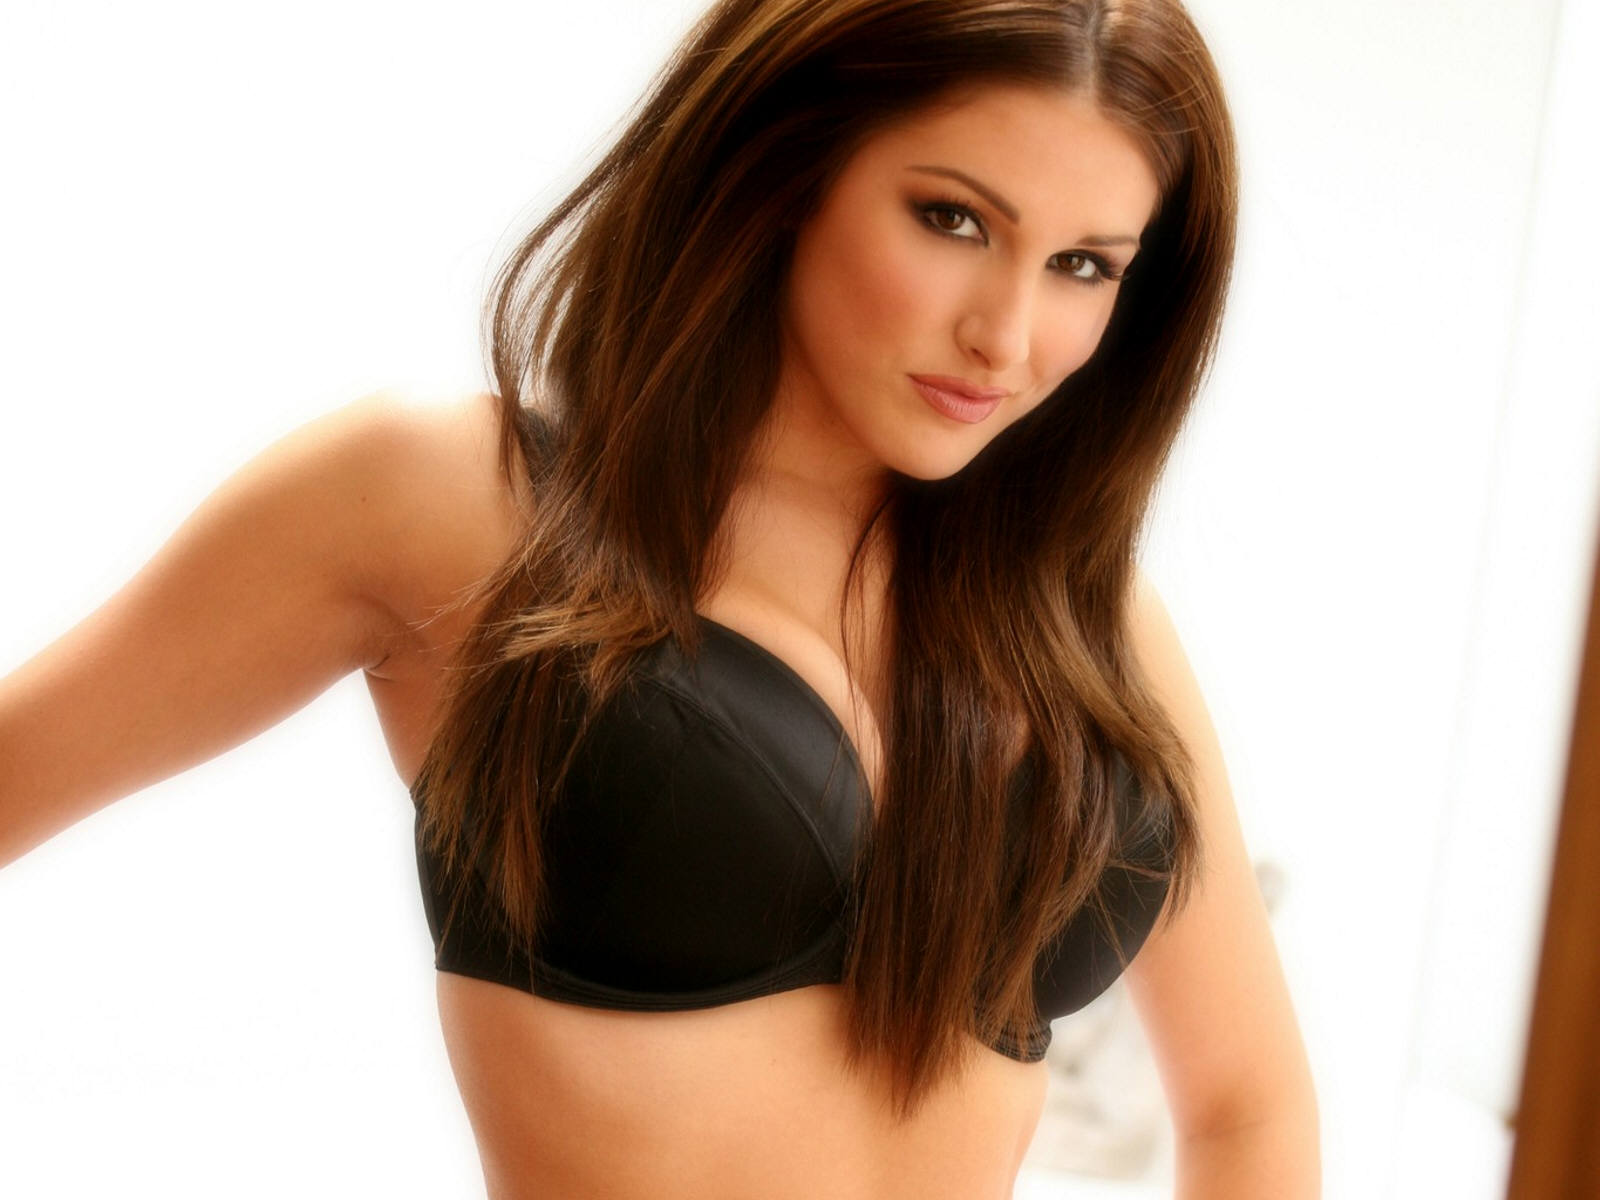 lucy pinder sexy nude topless big boobs big ass nude body lucy pinder boobs hd wallpapers sexy hot nude beach sexy wallpapers play boy model sexy nude wallpapers high quality wallpapers hot babes 2011 3 Download full gay movie